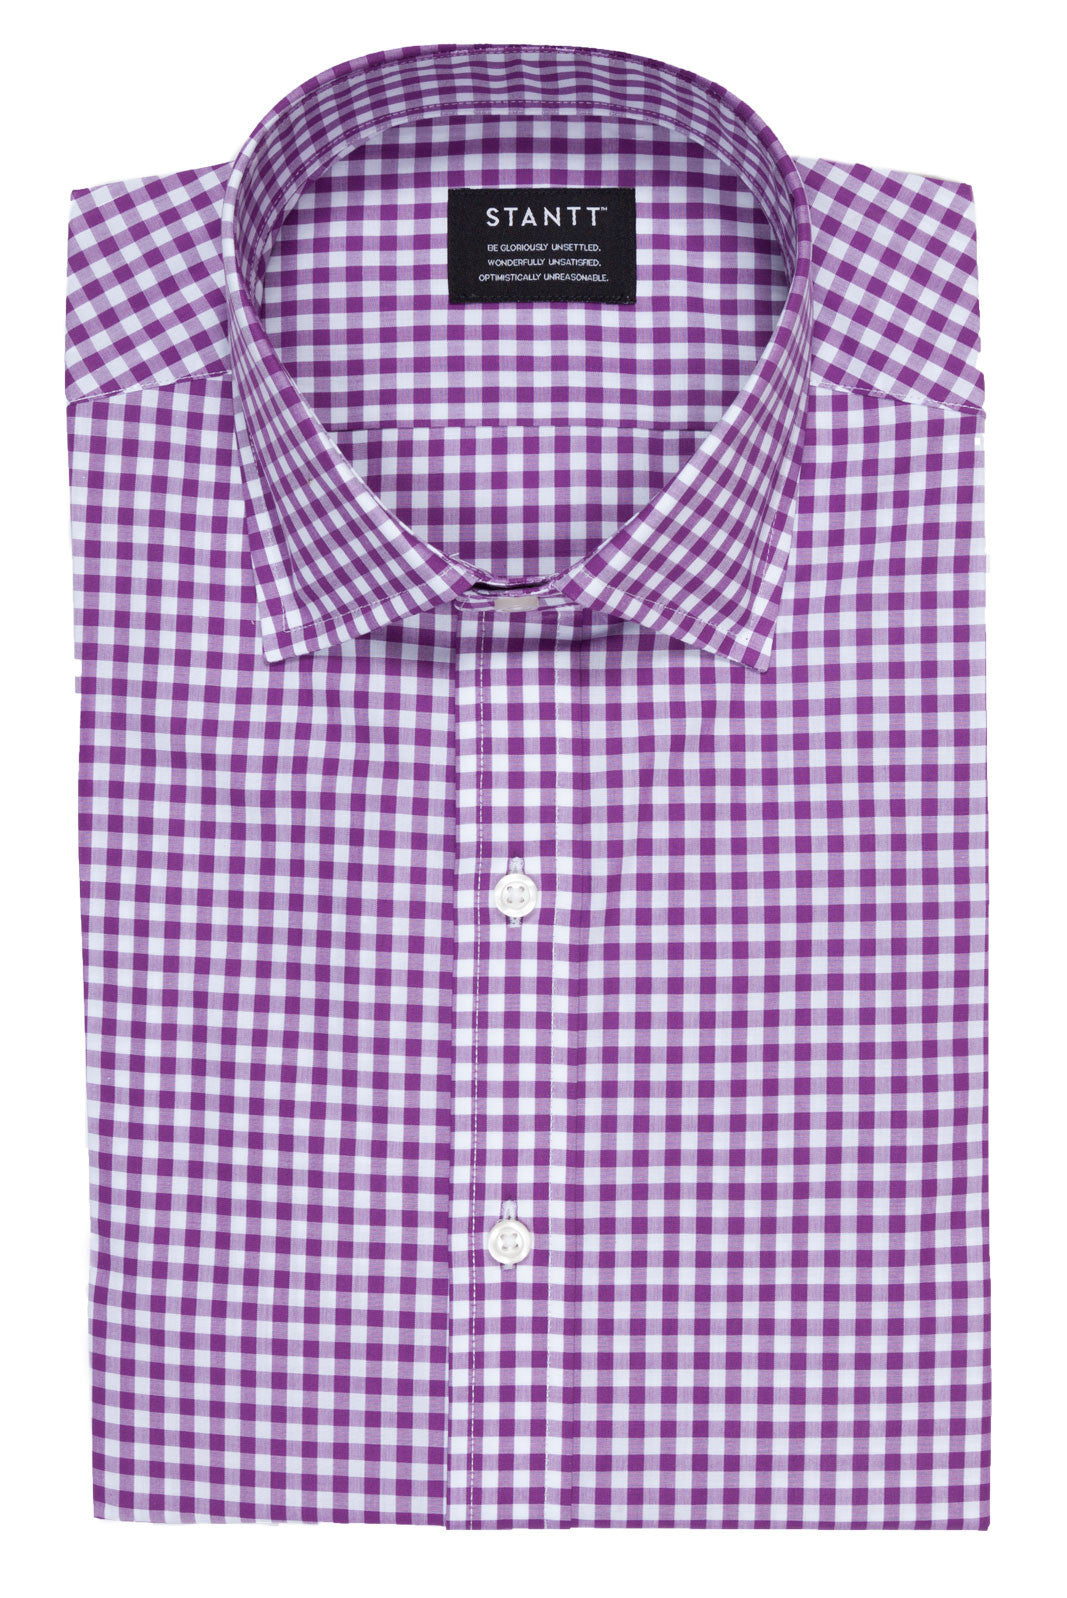 Purple Gingham: Cutaway Collar, Barrel Cuff